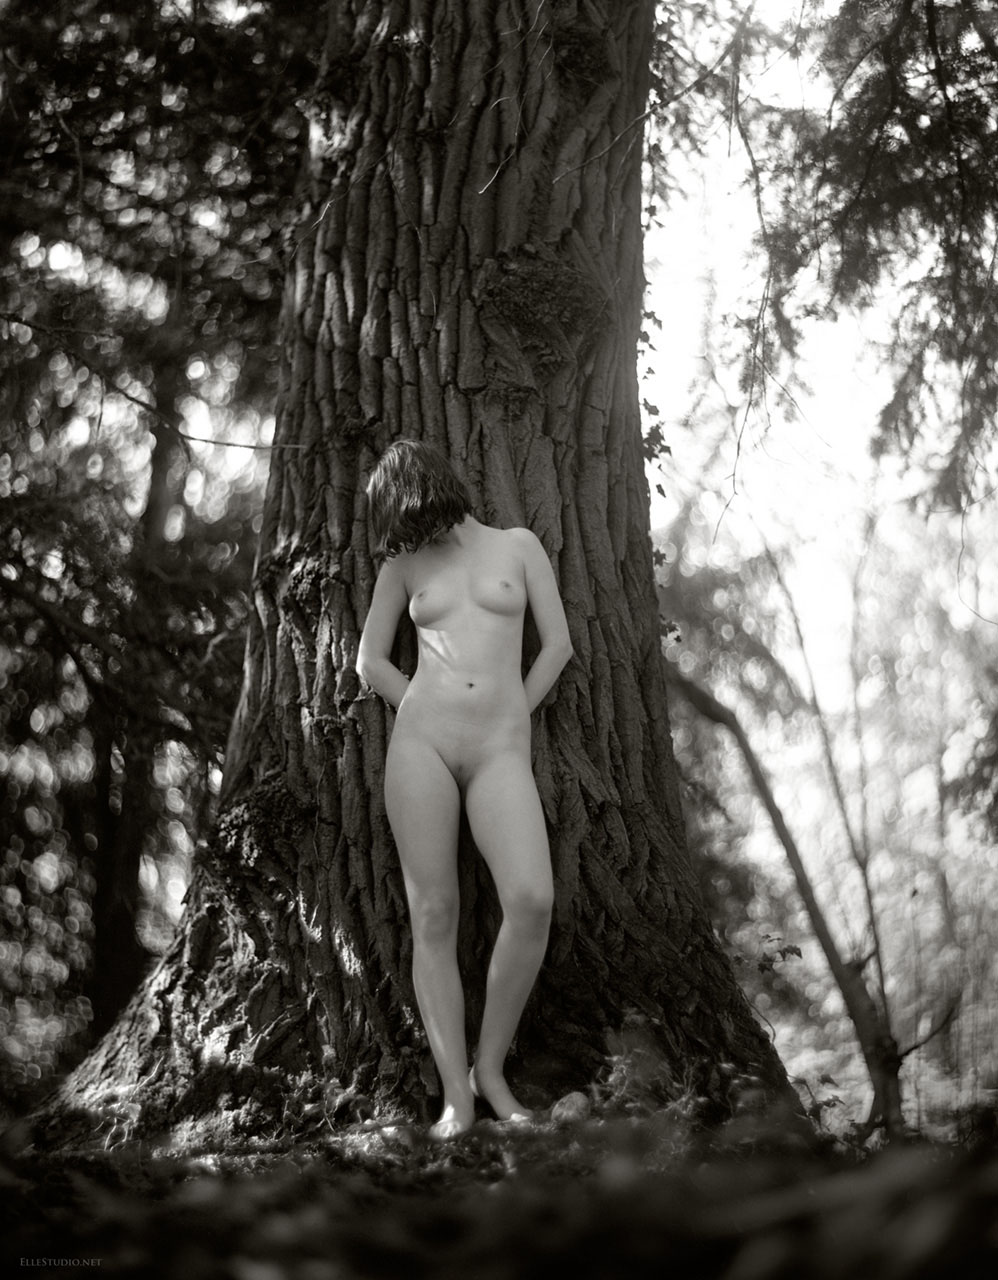 Large format film photoghraphy, art nude by Fabien Queloz